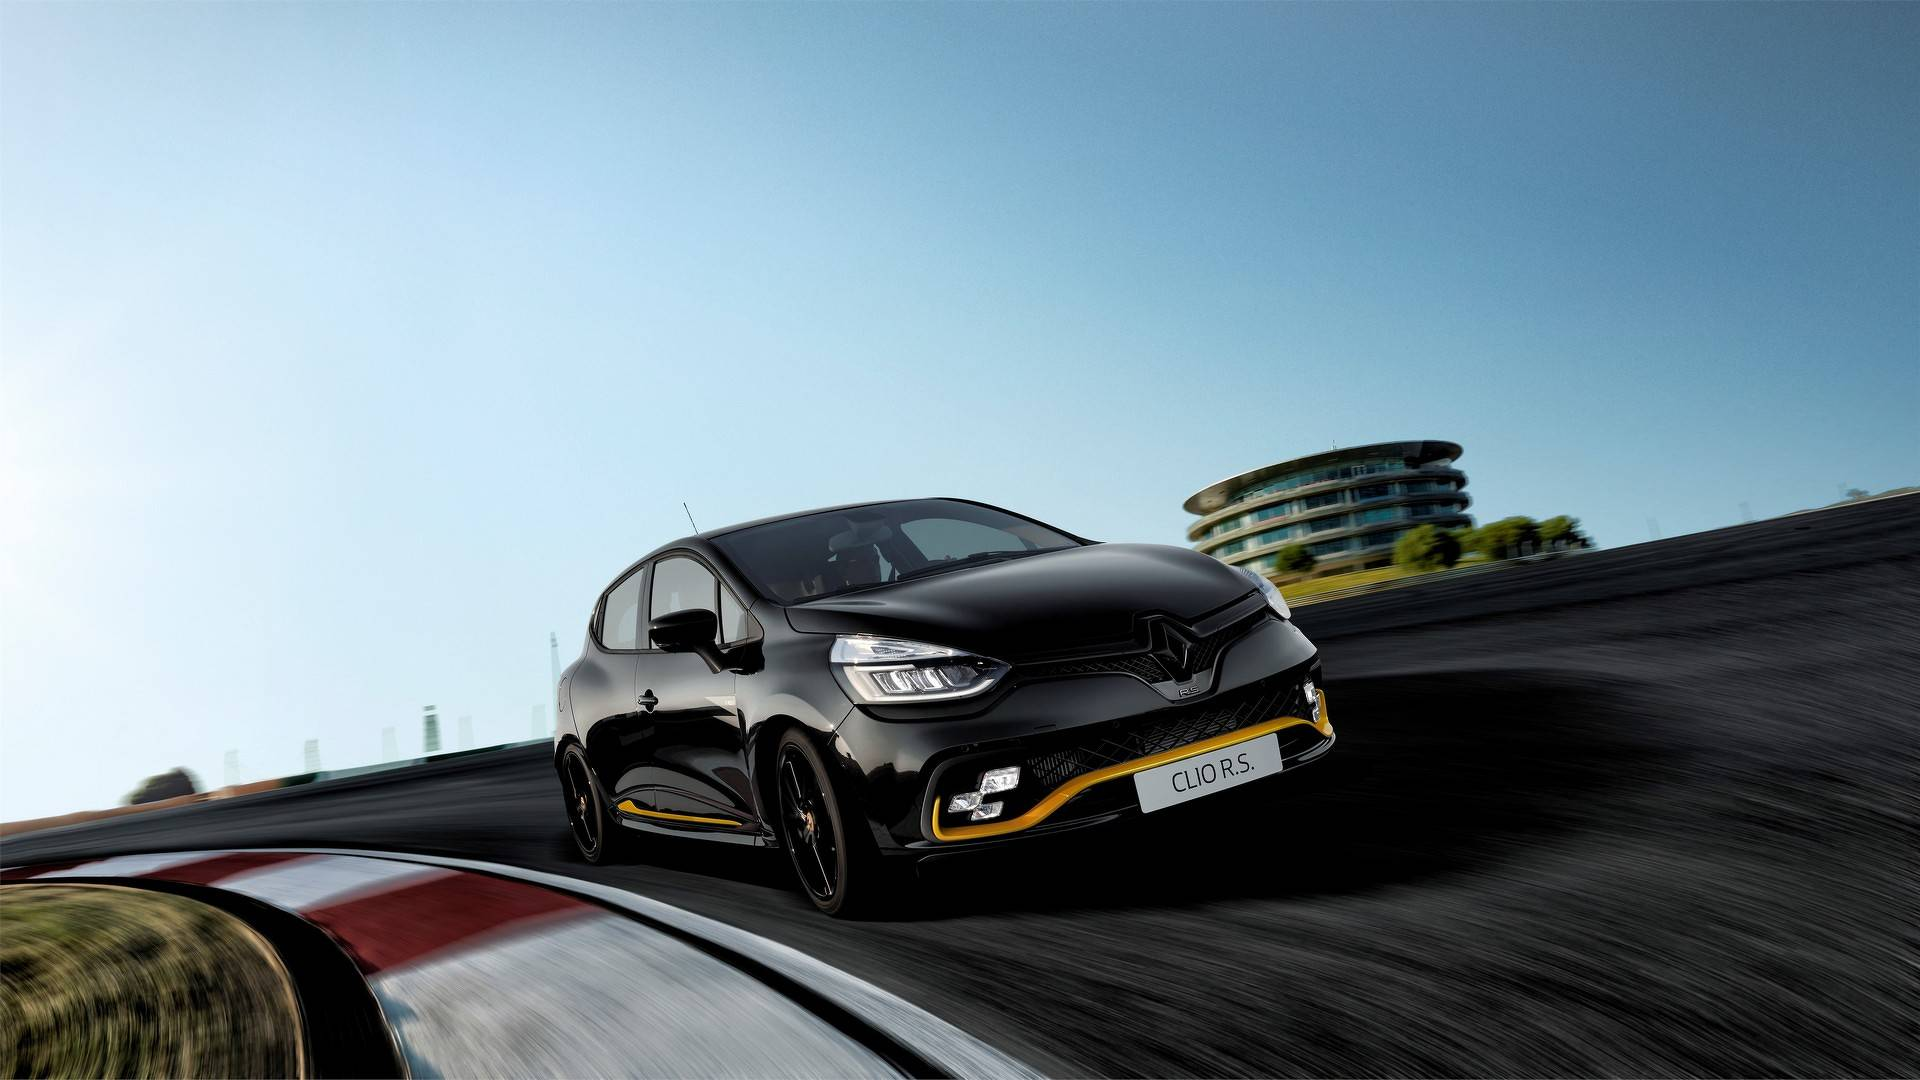 Renault Clio R S  18 Is A Hot Hatch With An F1 Theme